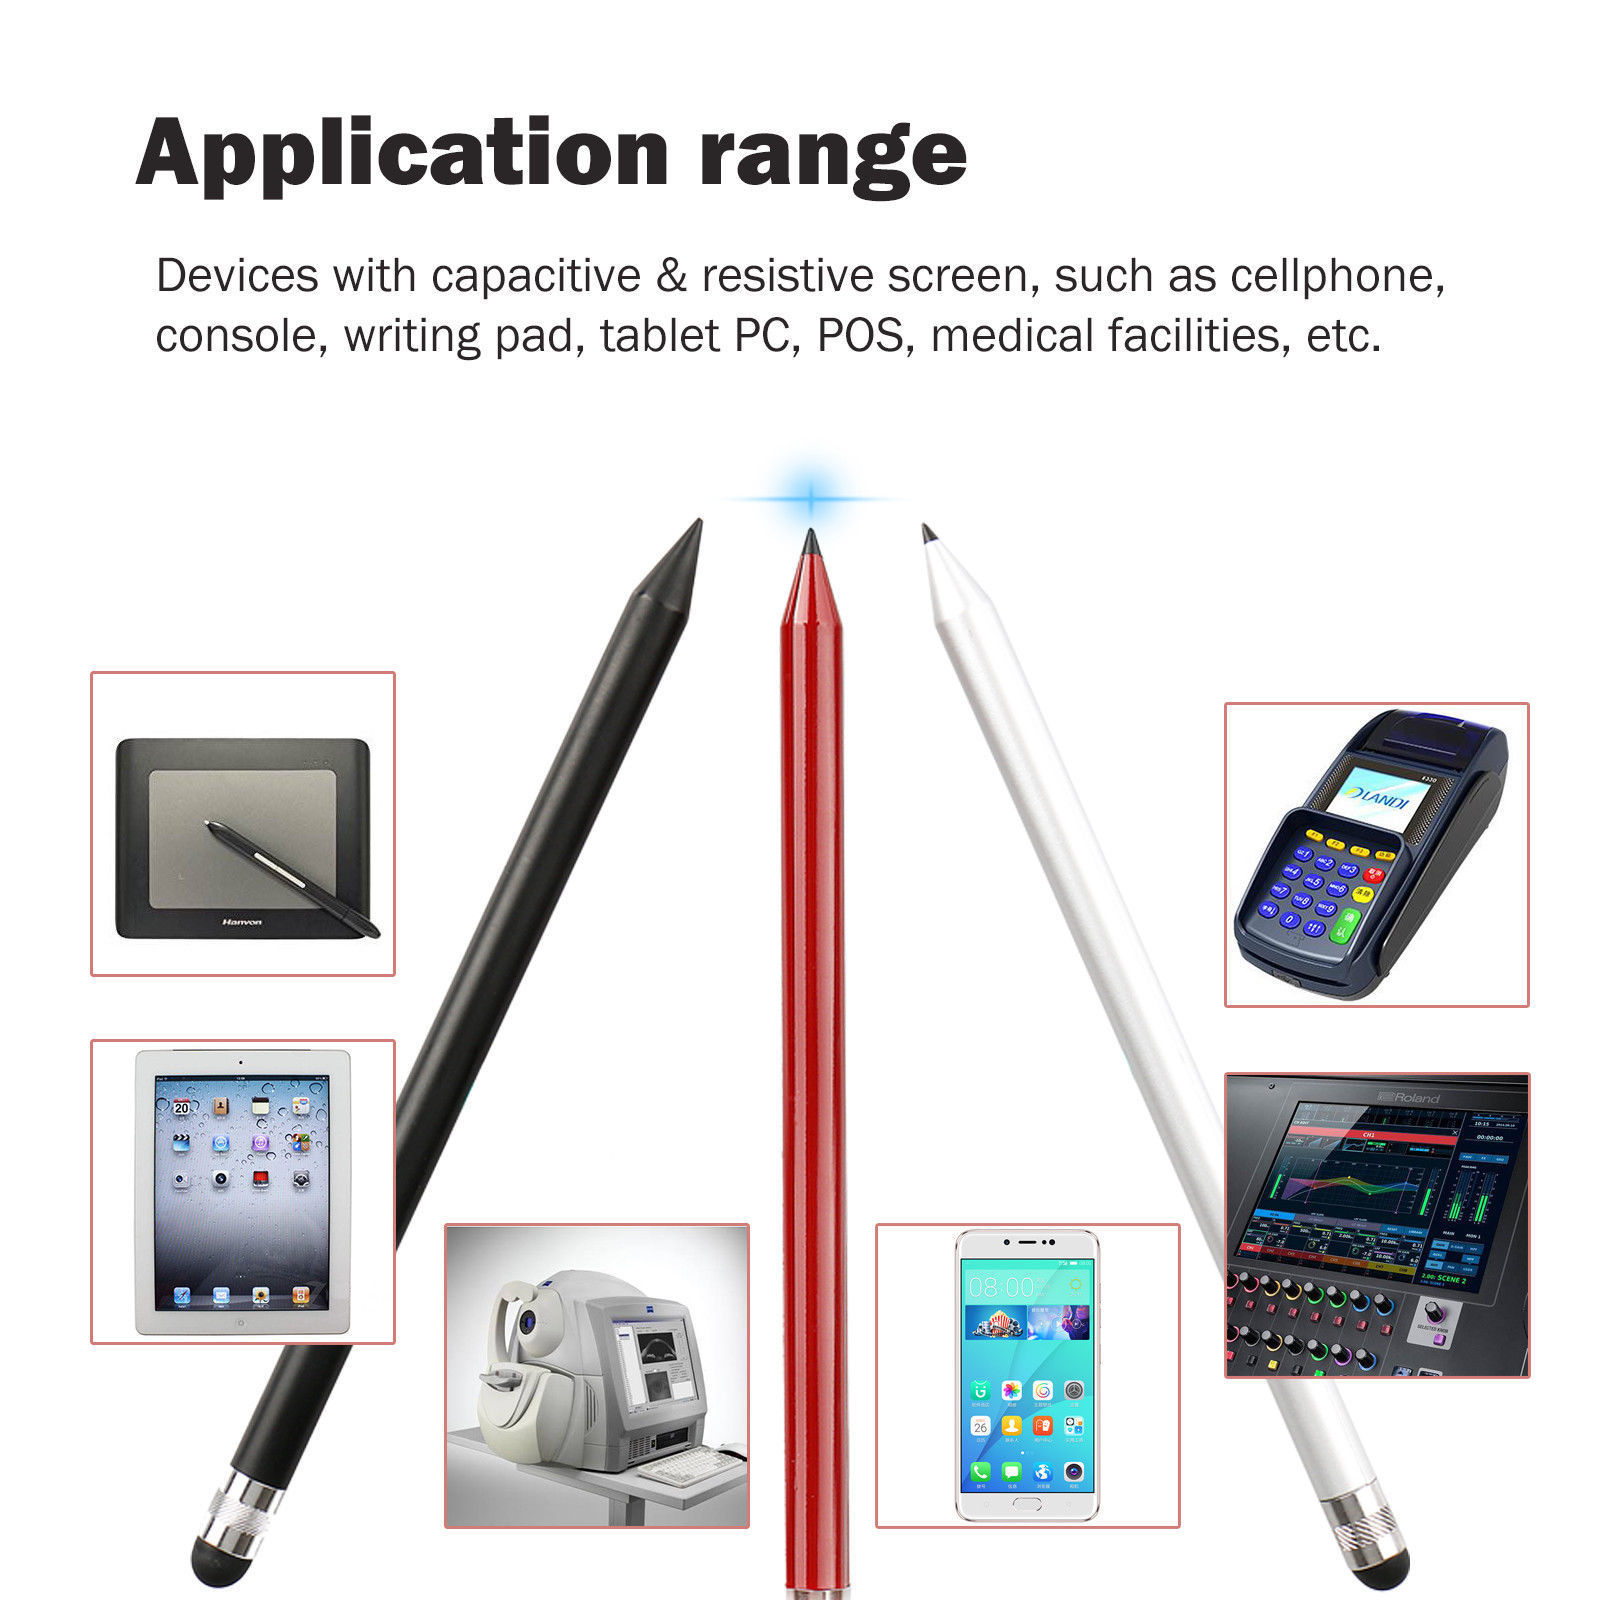 Capacitive-Pen-Touch-Screen-Stylus-Pencil-for-Tablet-iPad-Cell-Phone-Samsung-PC thumbnail 6